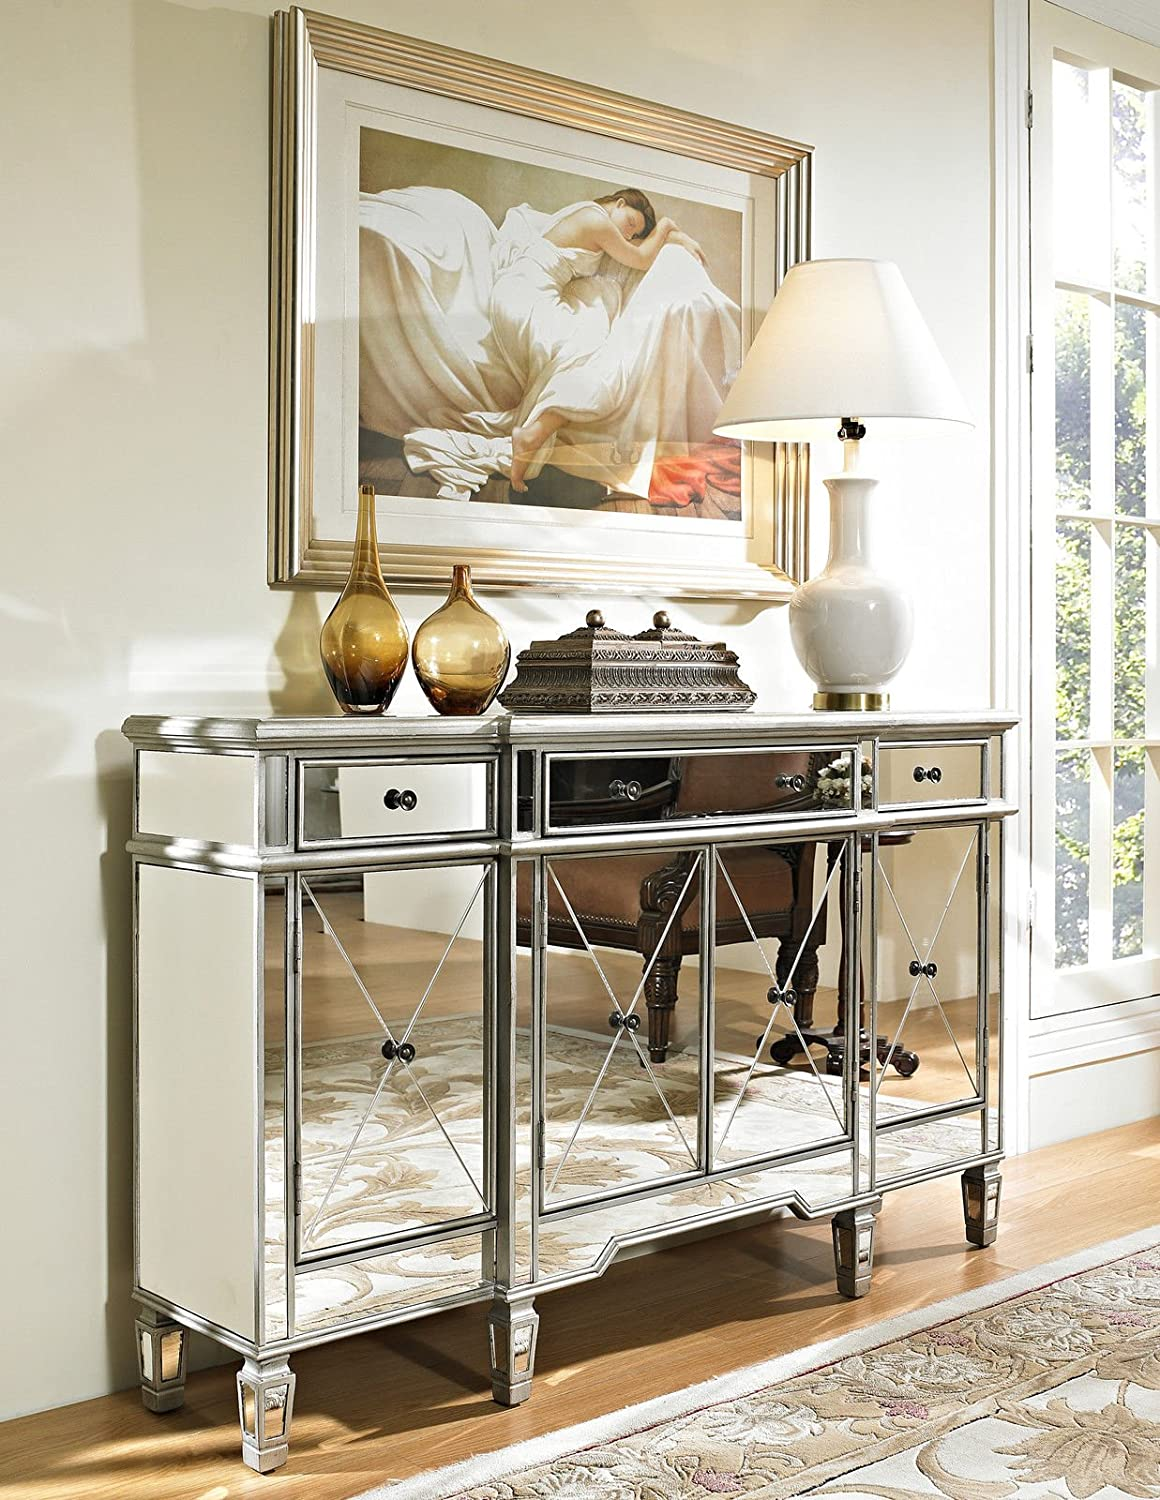 Delicieux Amazon.com: 60u201d Mirrored Reflection Andrea Hall Console Cabinet Model  DH 695: Kitchen U0026 Dining